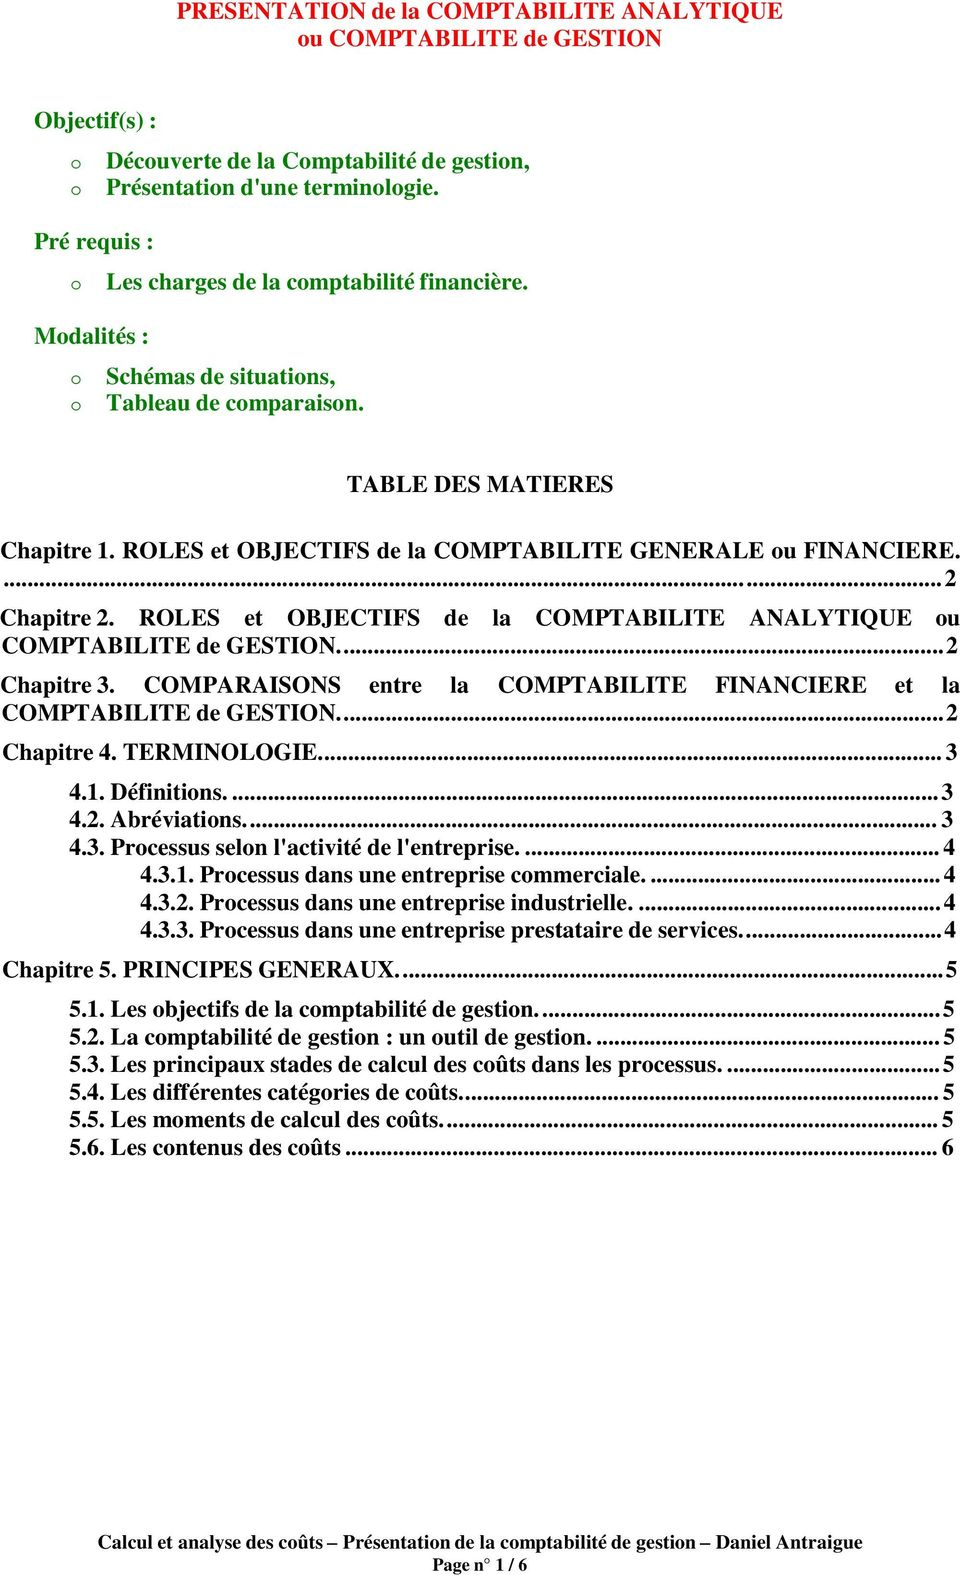 Presentation De La Comptabilite Analytique Pdf